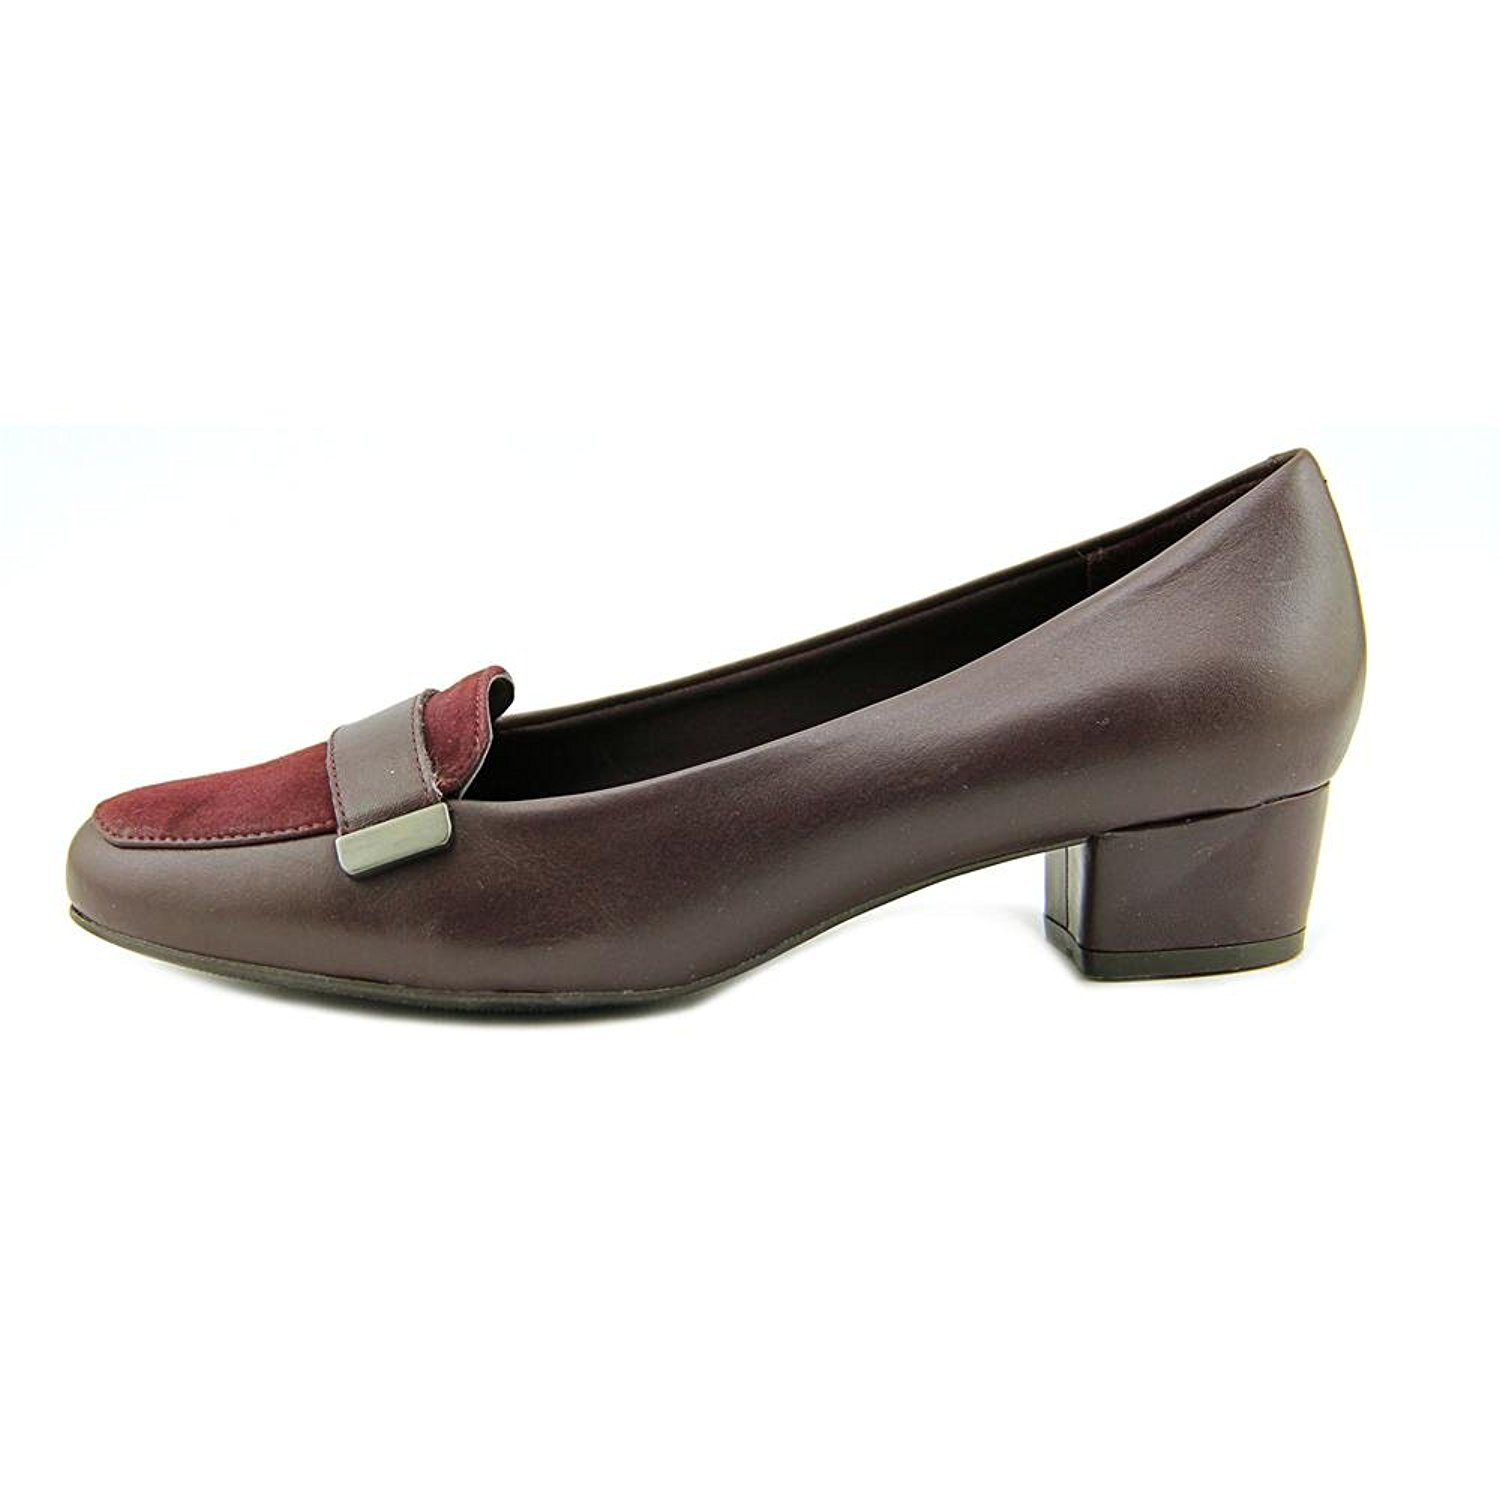 Easy Spirit Damenschuhe Ulana Leder Closed Toe Classic Pumps, Wine, Größe 10.0